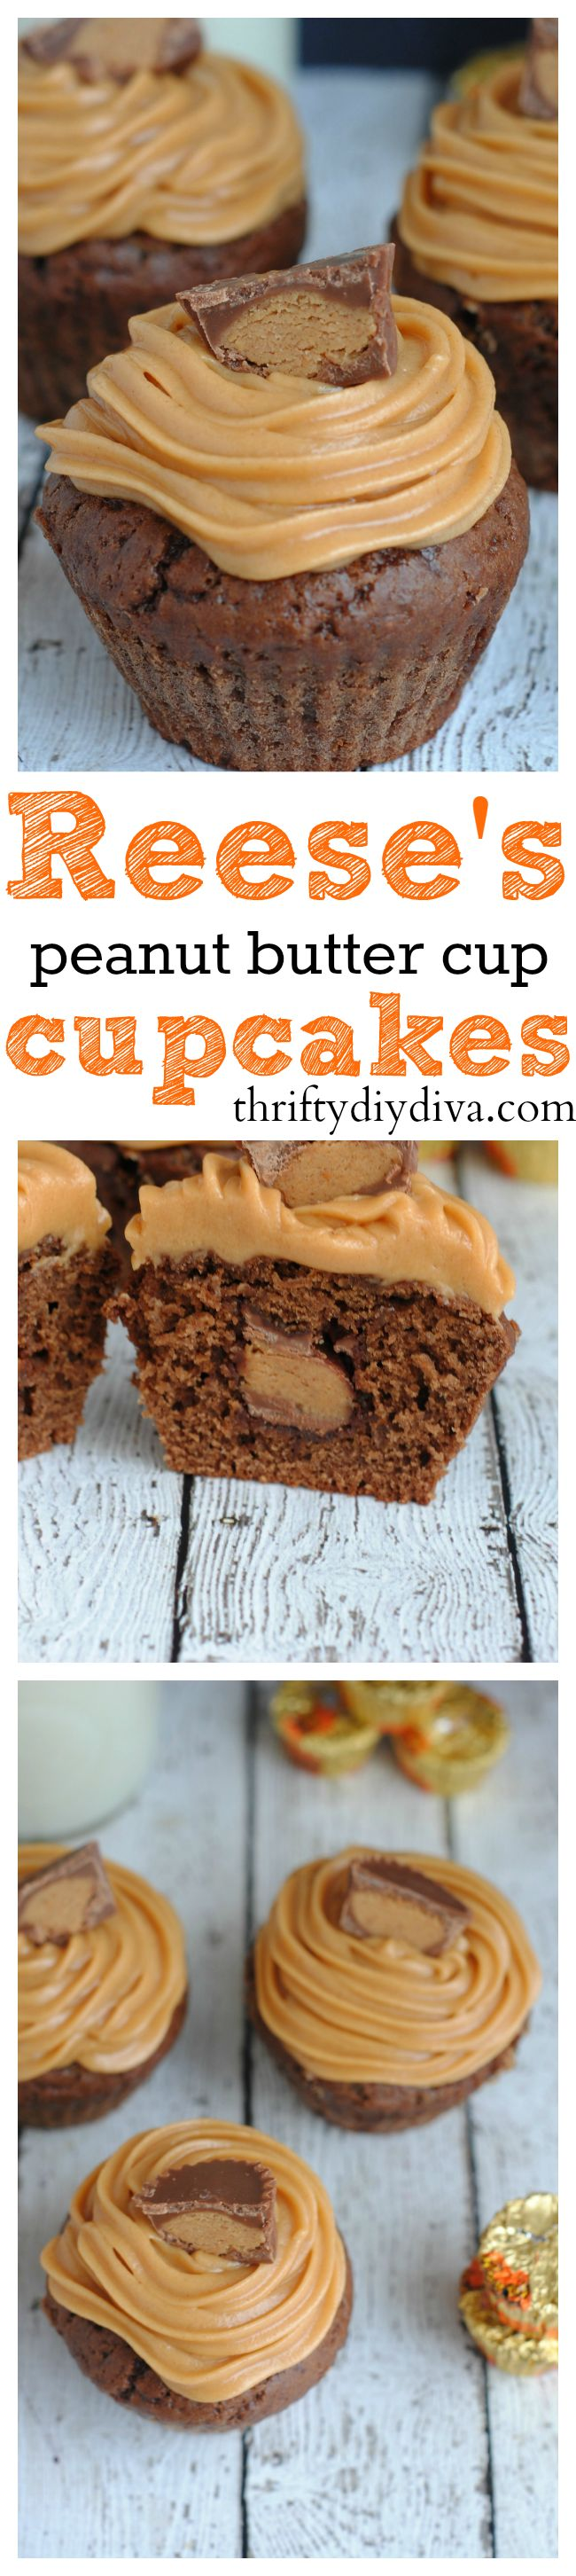 Reese's Peanut Butter Cup Cupcakes and Peanut Butter Frosting - your kids will love it, hubby will love it, and that means you'll need to make 2 batches!!